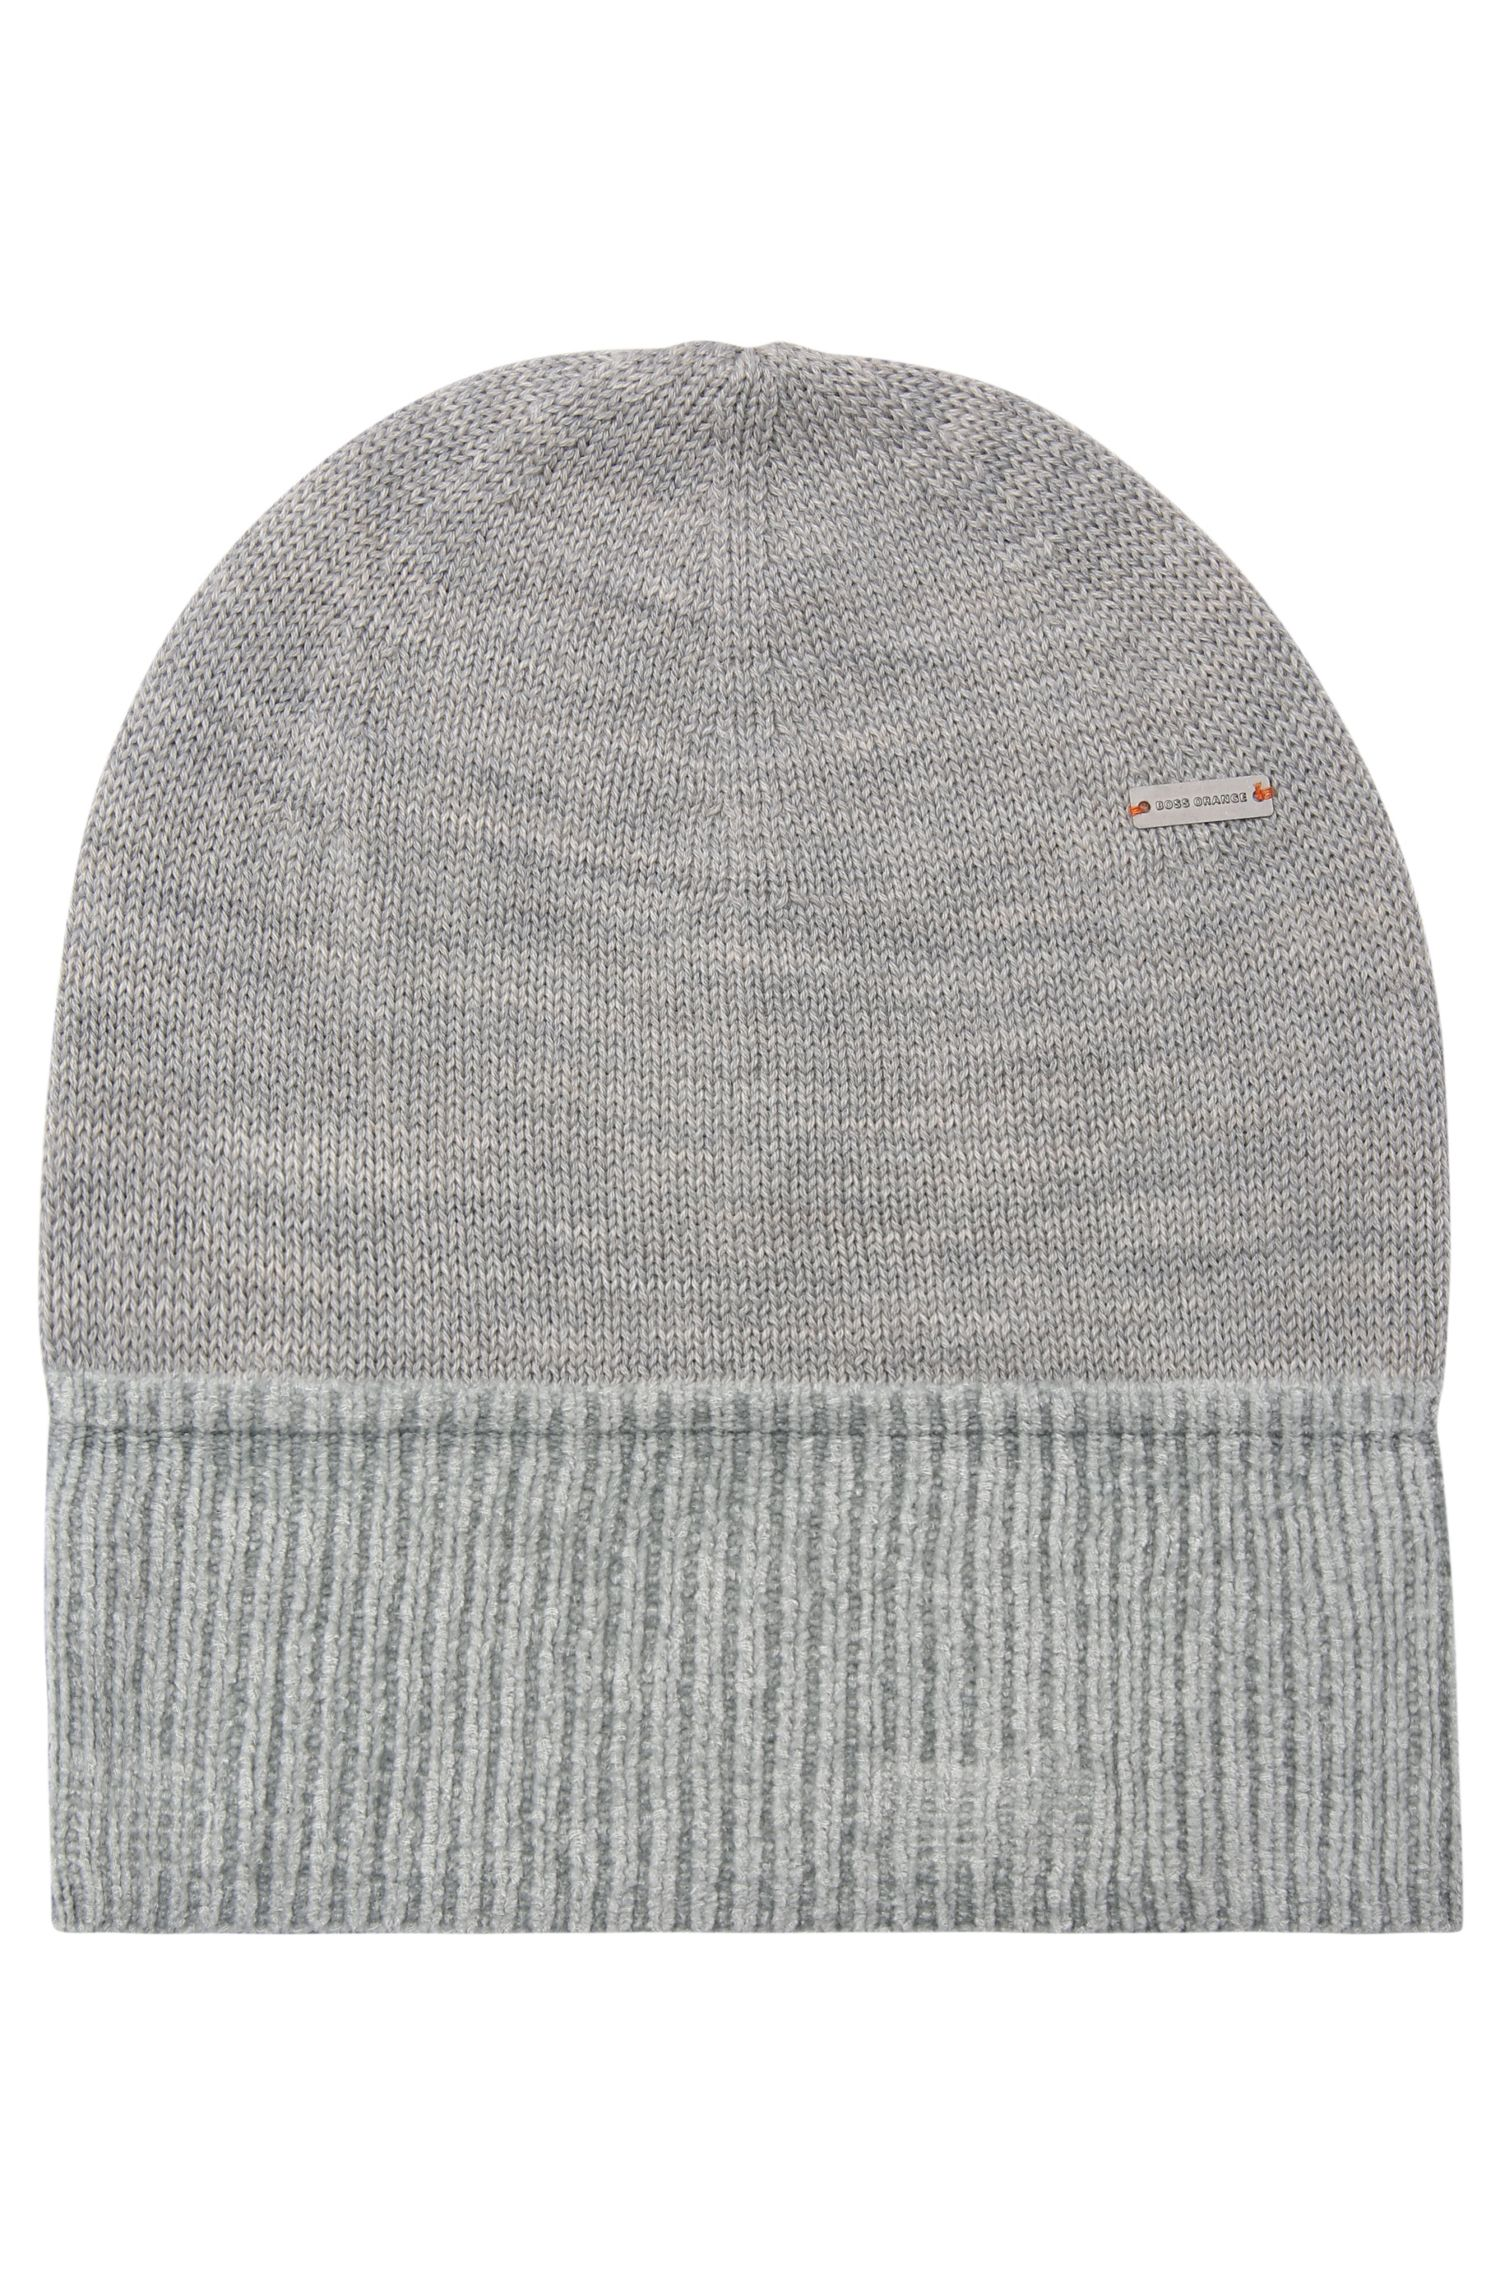 Knit cap in wool blend with cotton: 'Fidoo'